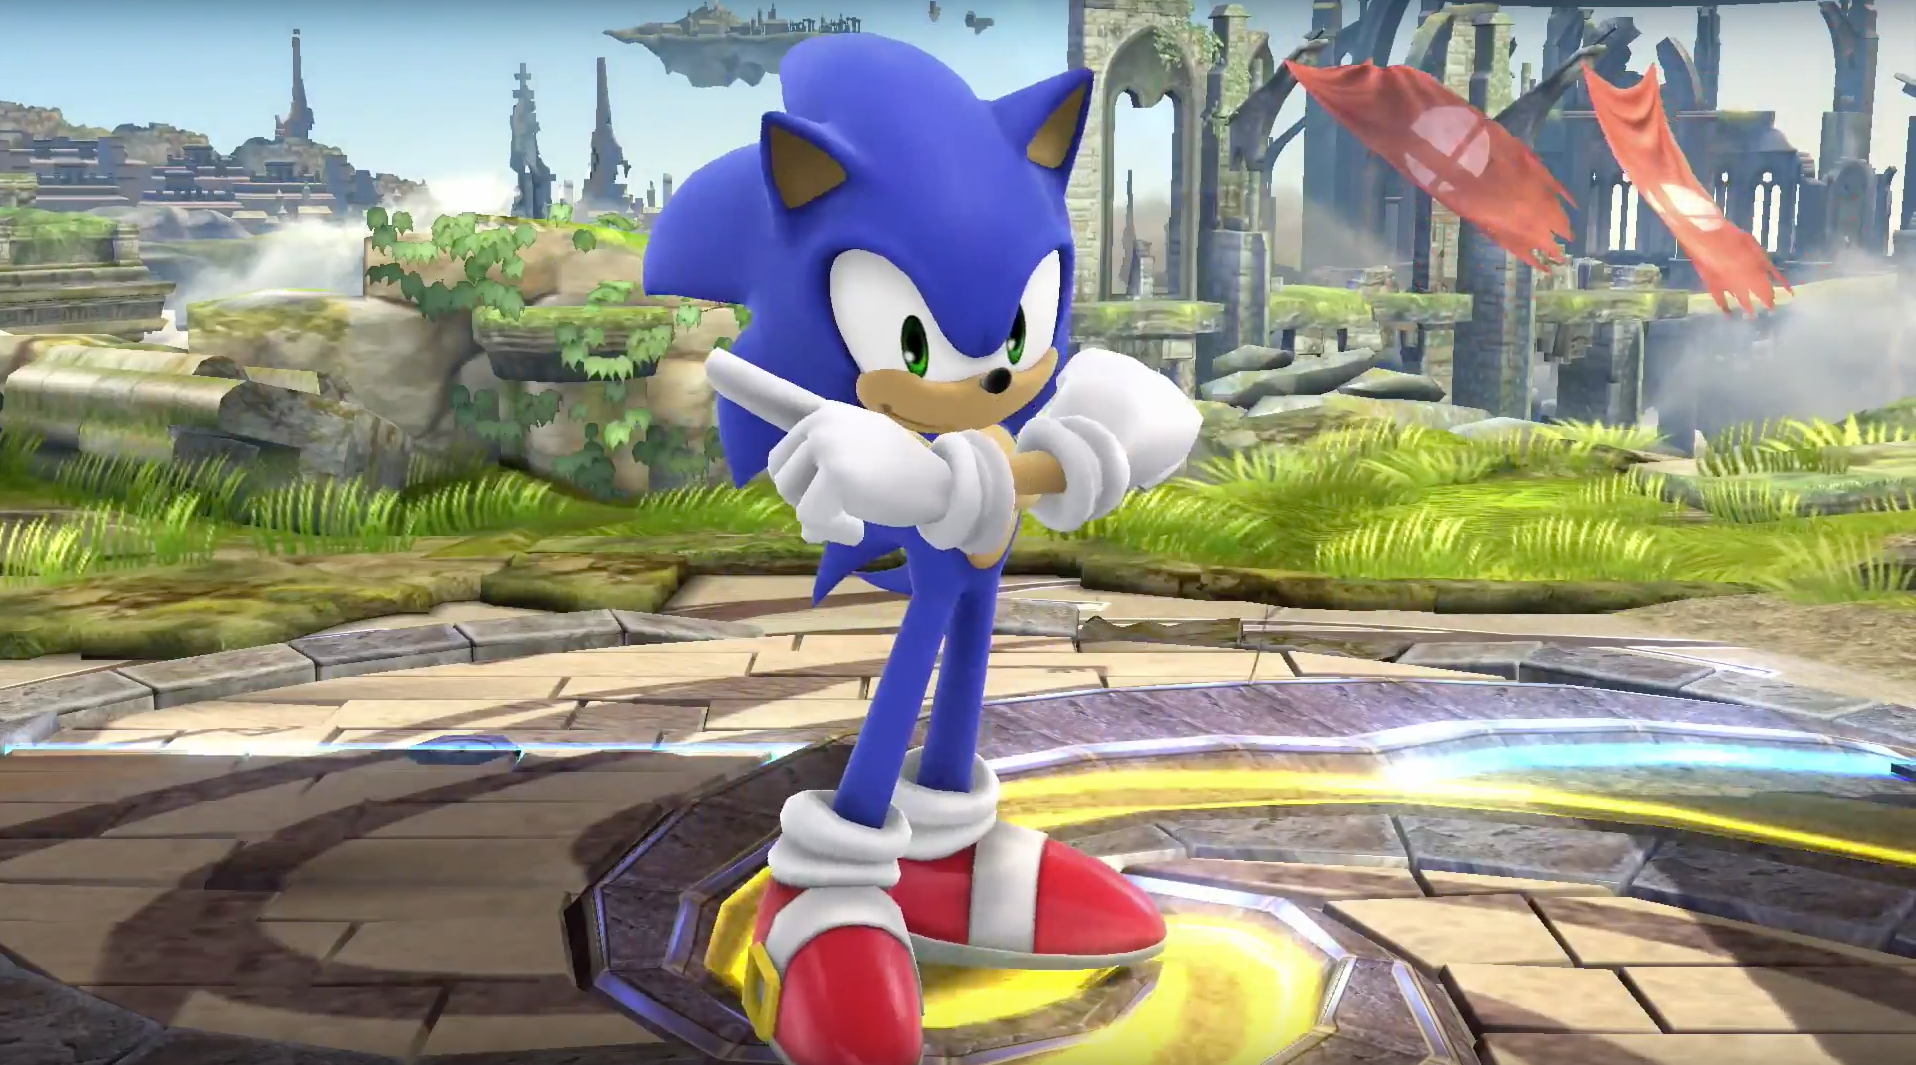 Smash 4 Characters, Ranked By How Annoying They Are